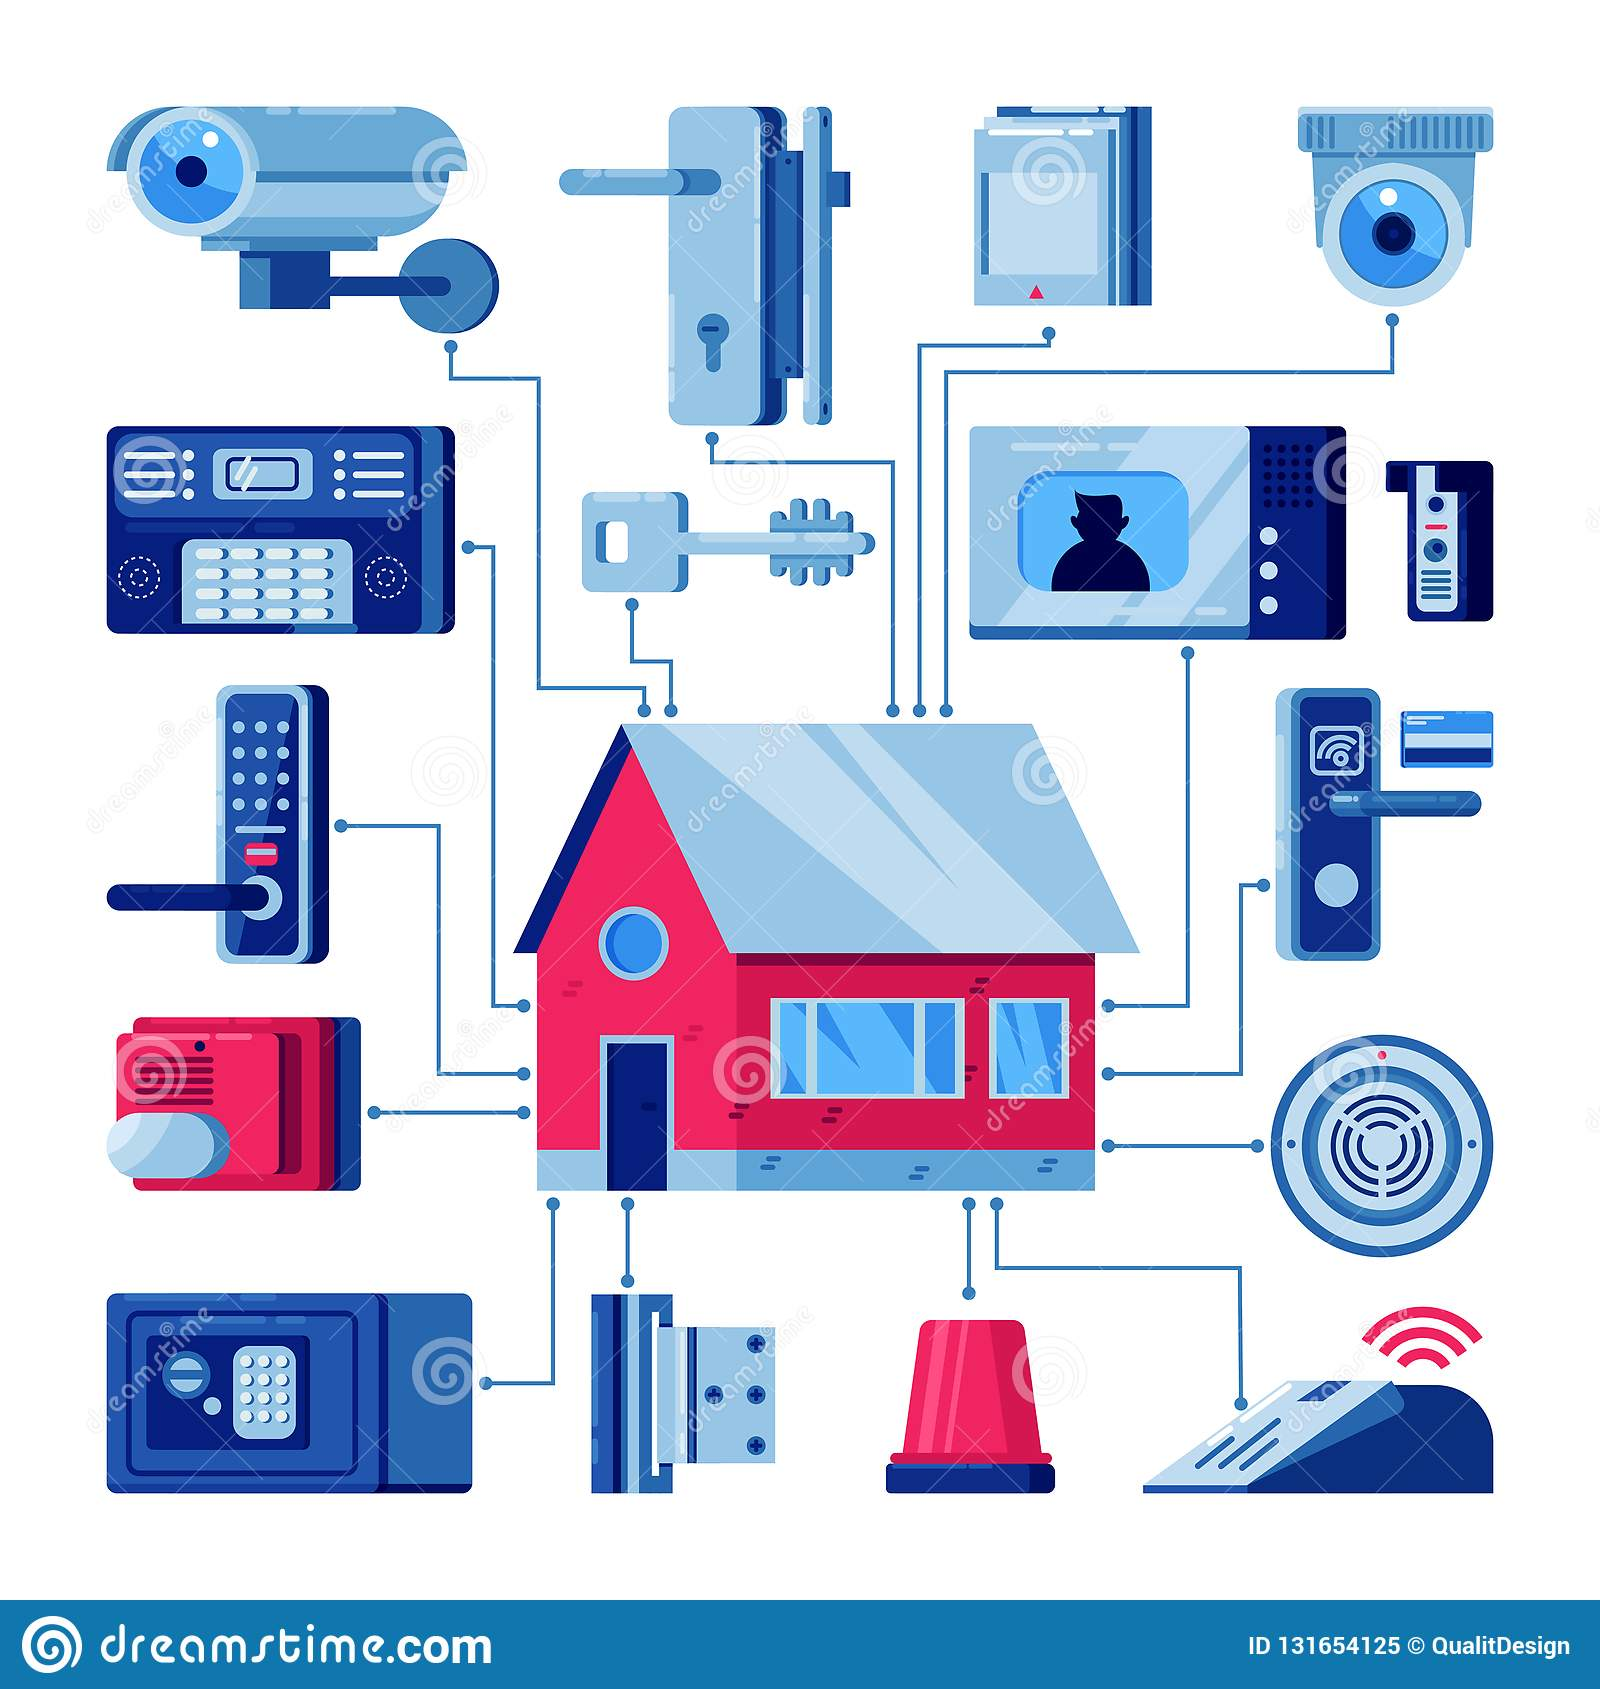 House with connected home security systems. Smart technologies, safety house, control and protection concept. Vector flat isolated